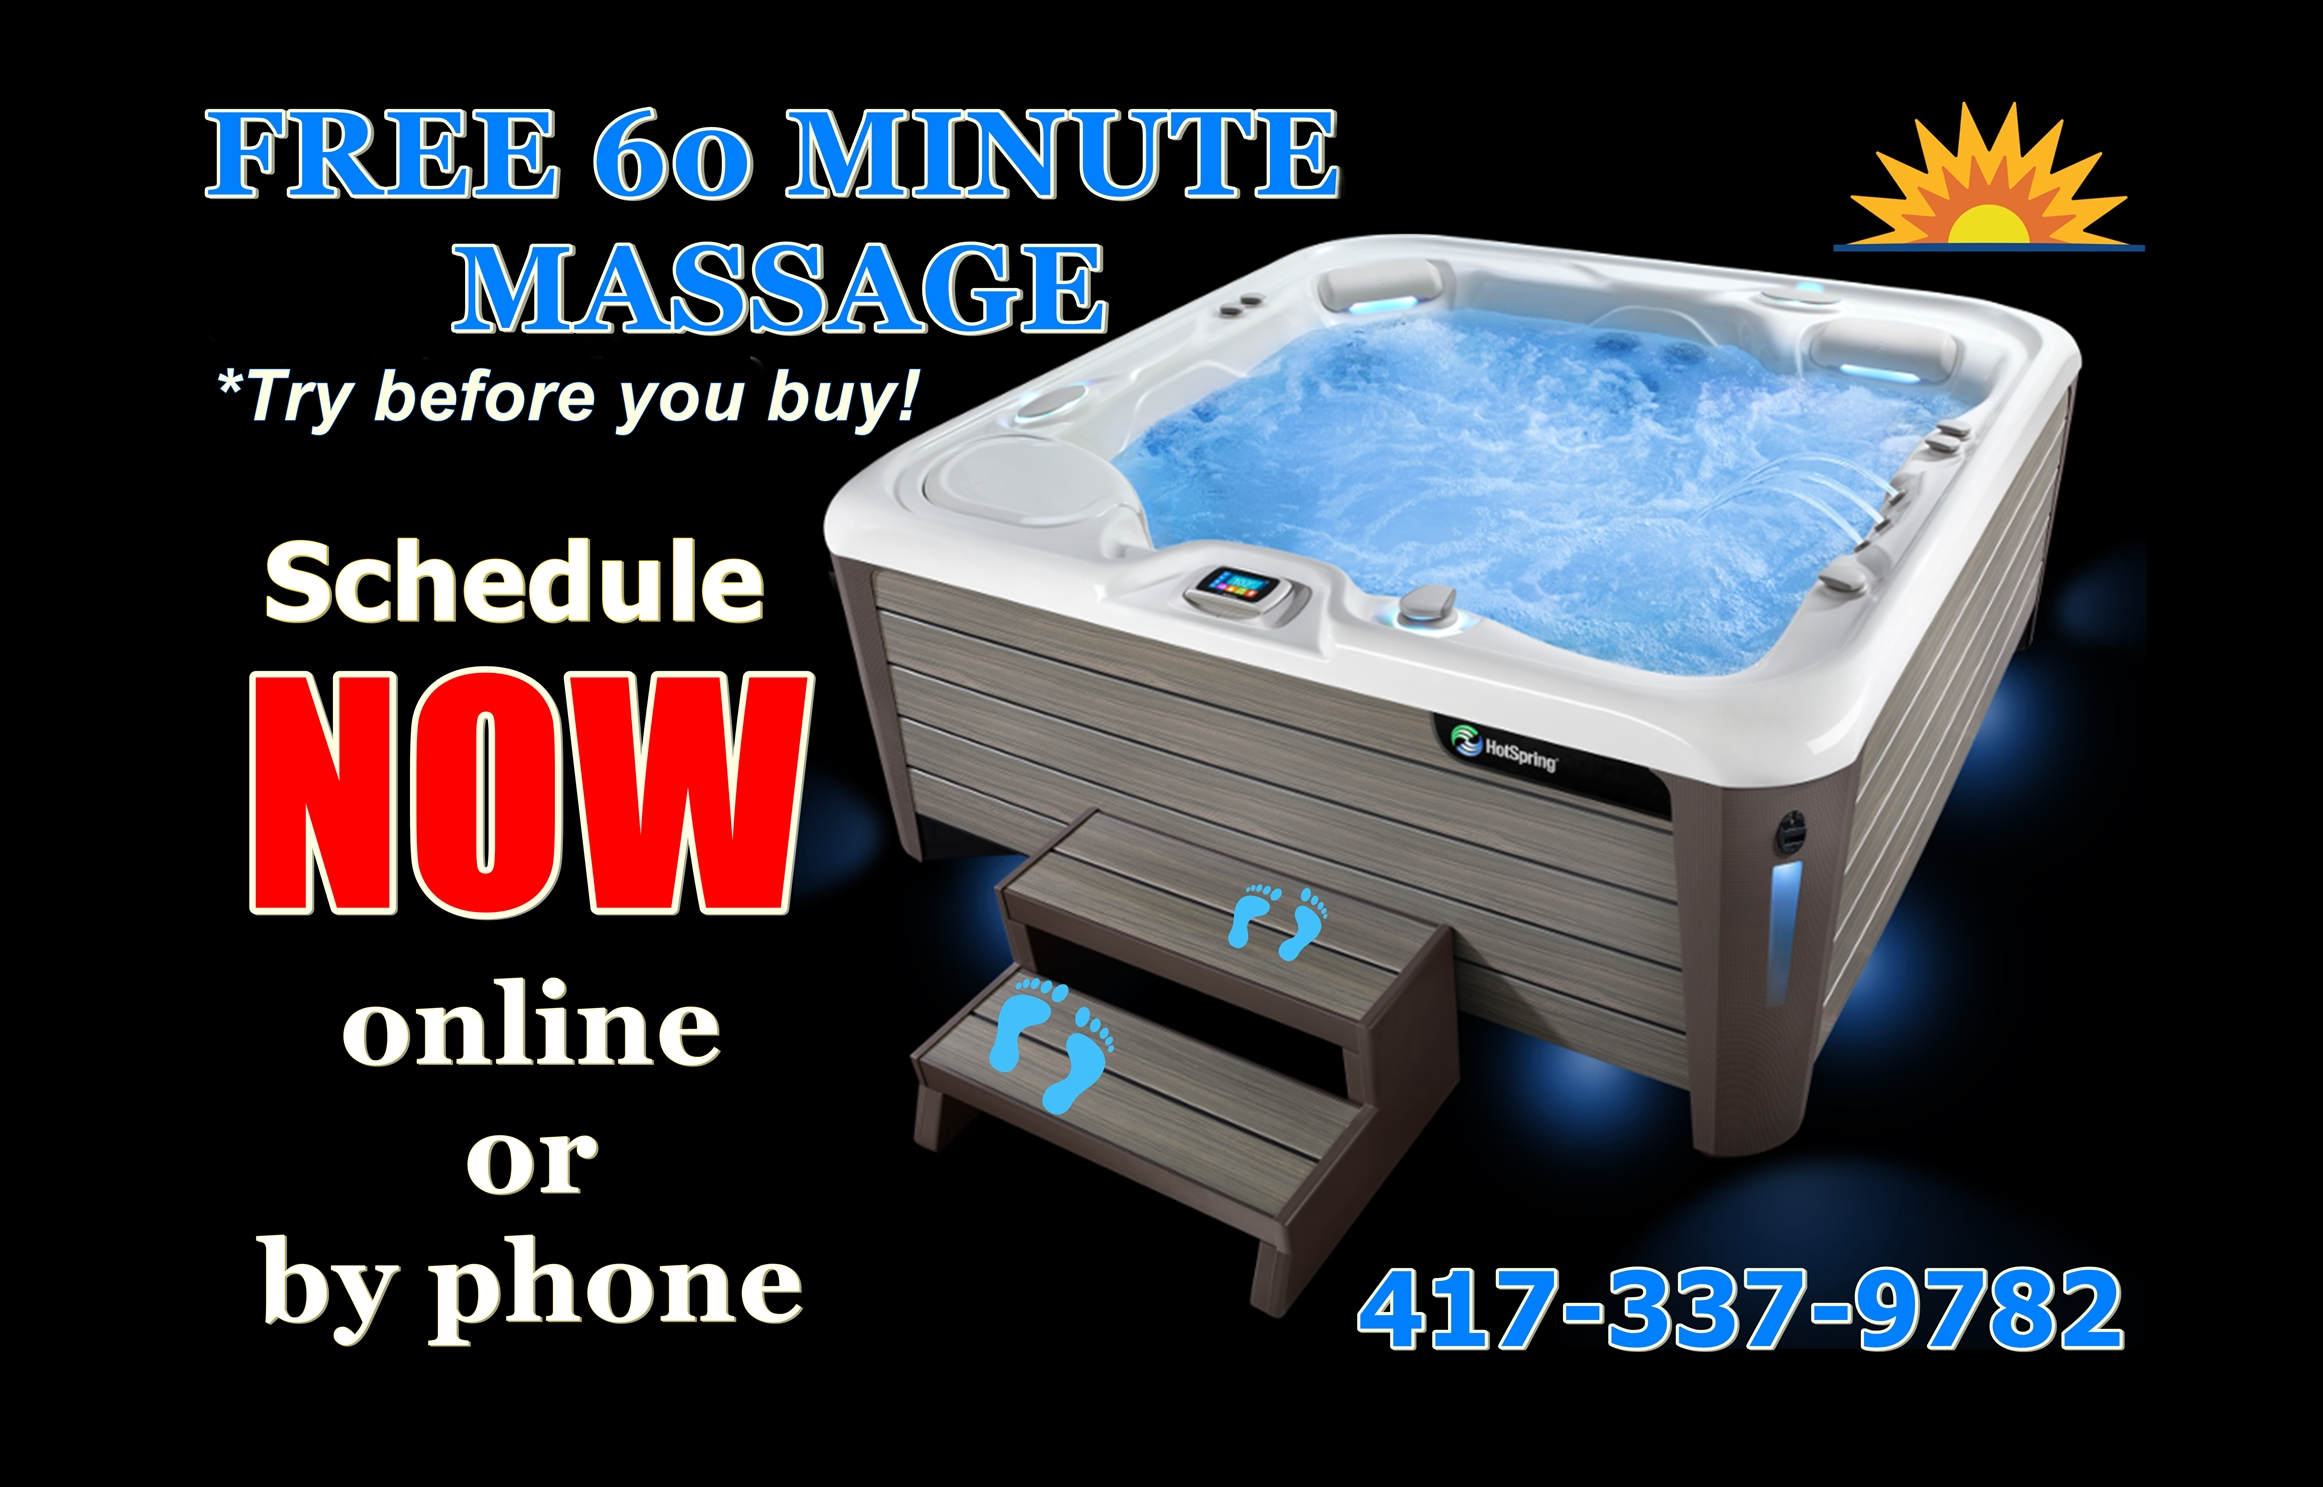 aa 60 min free massage